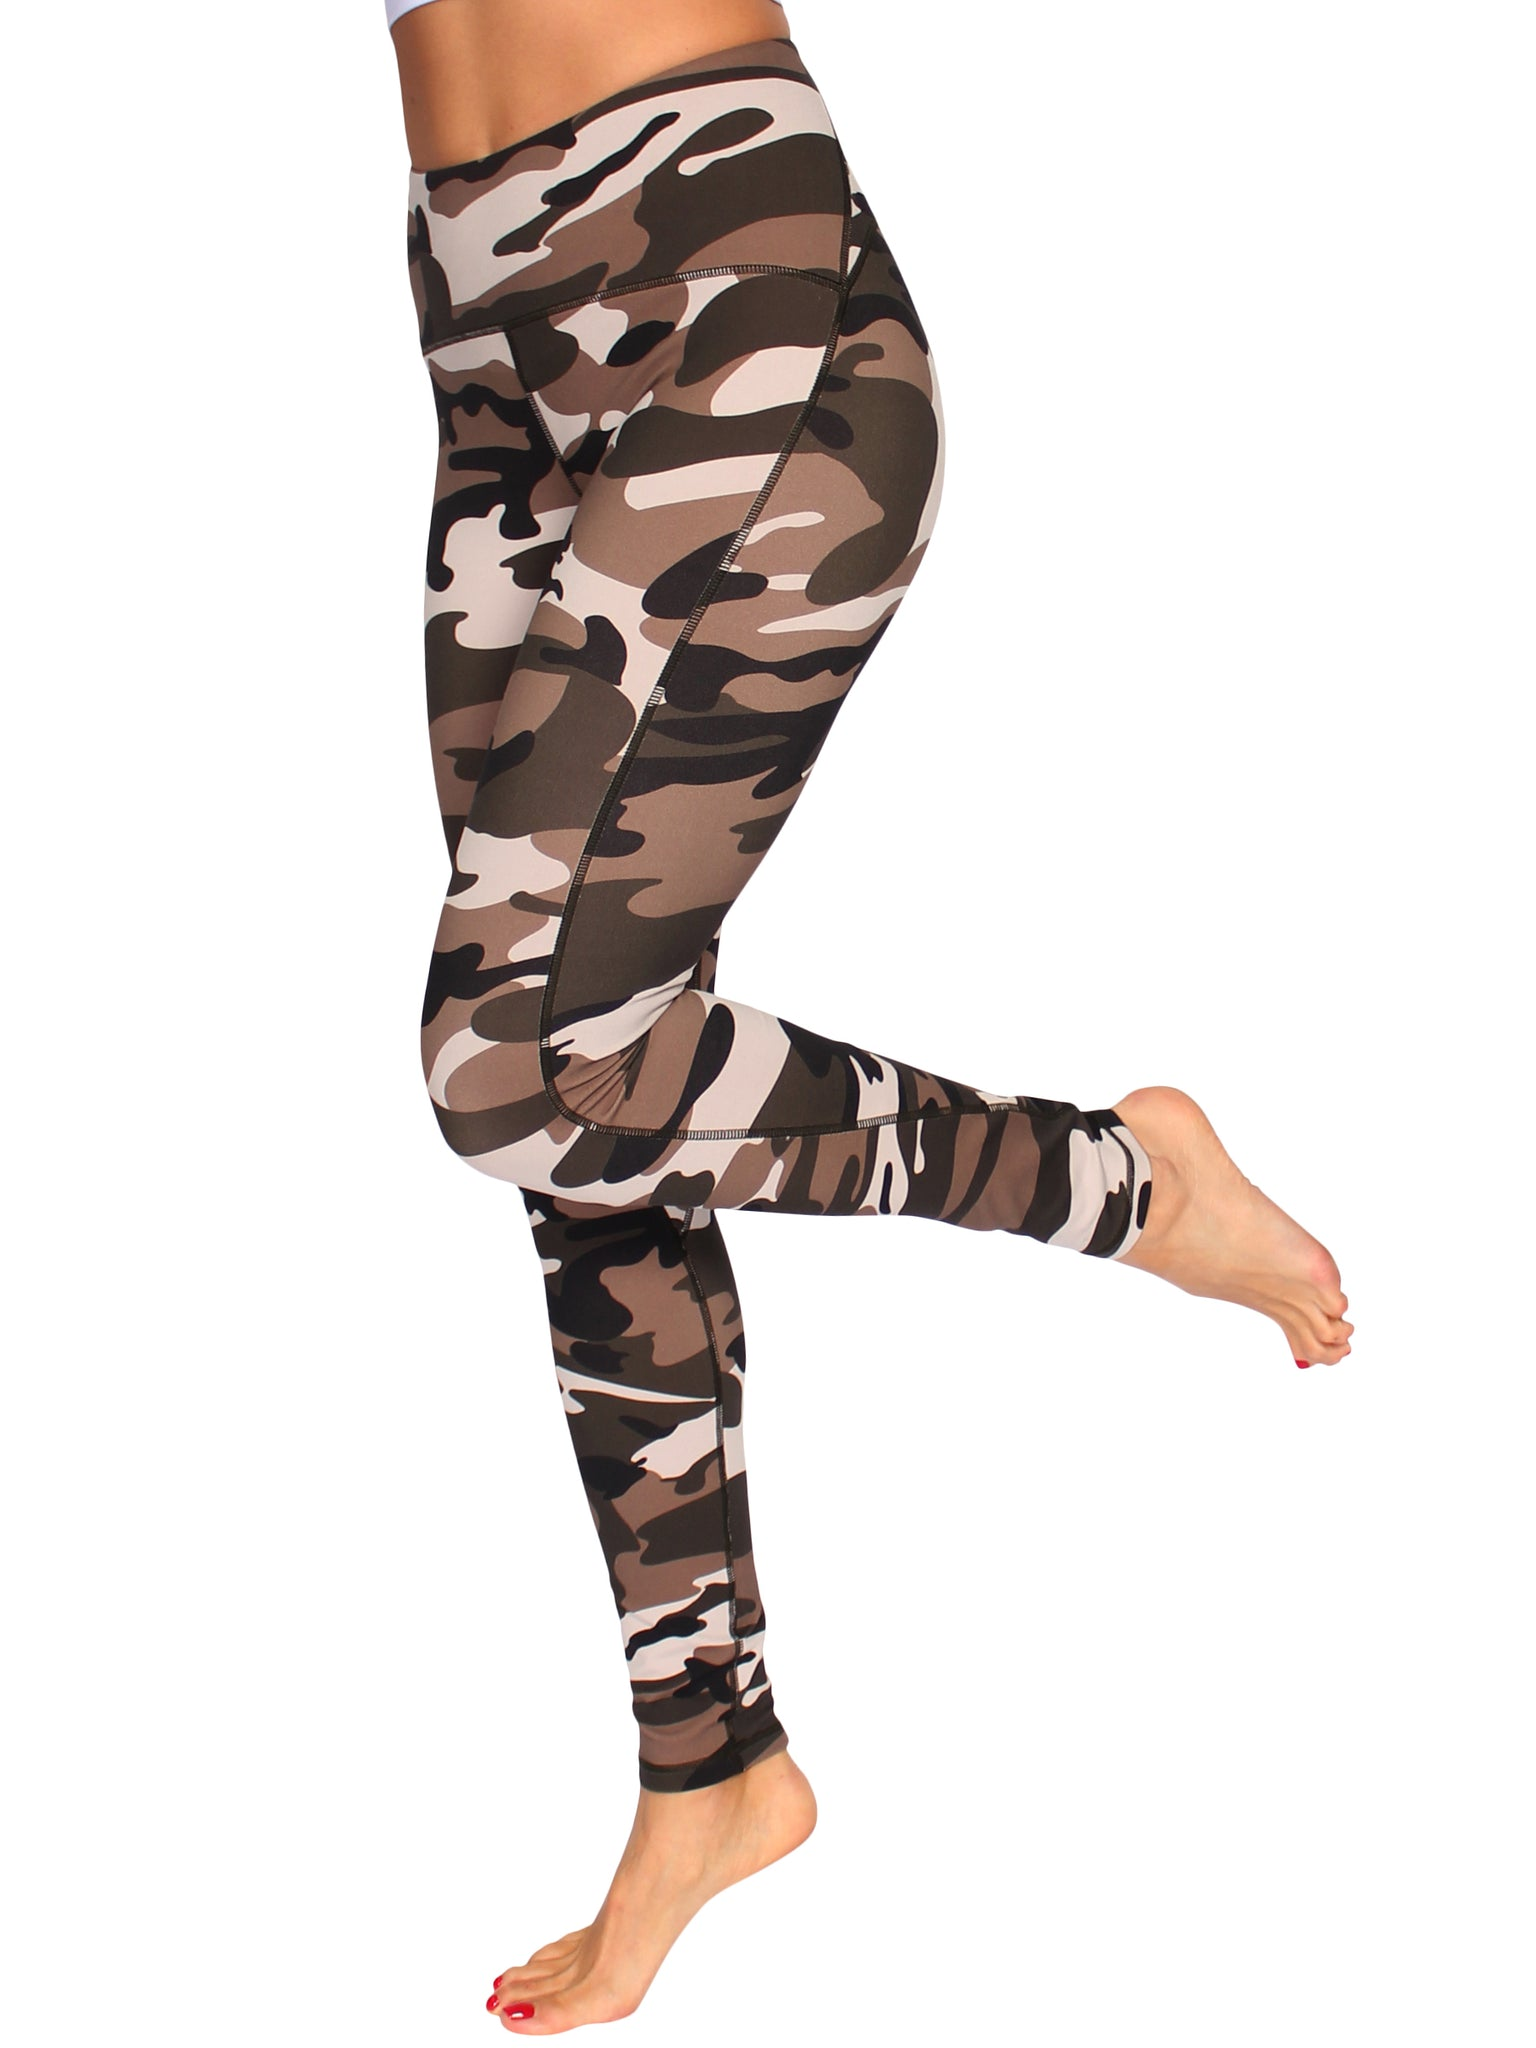 YOGA SHAPER F/L CAMO TIGHTS - SAHARA